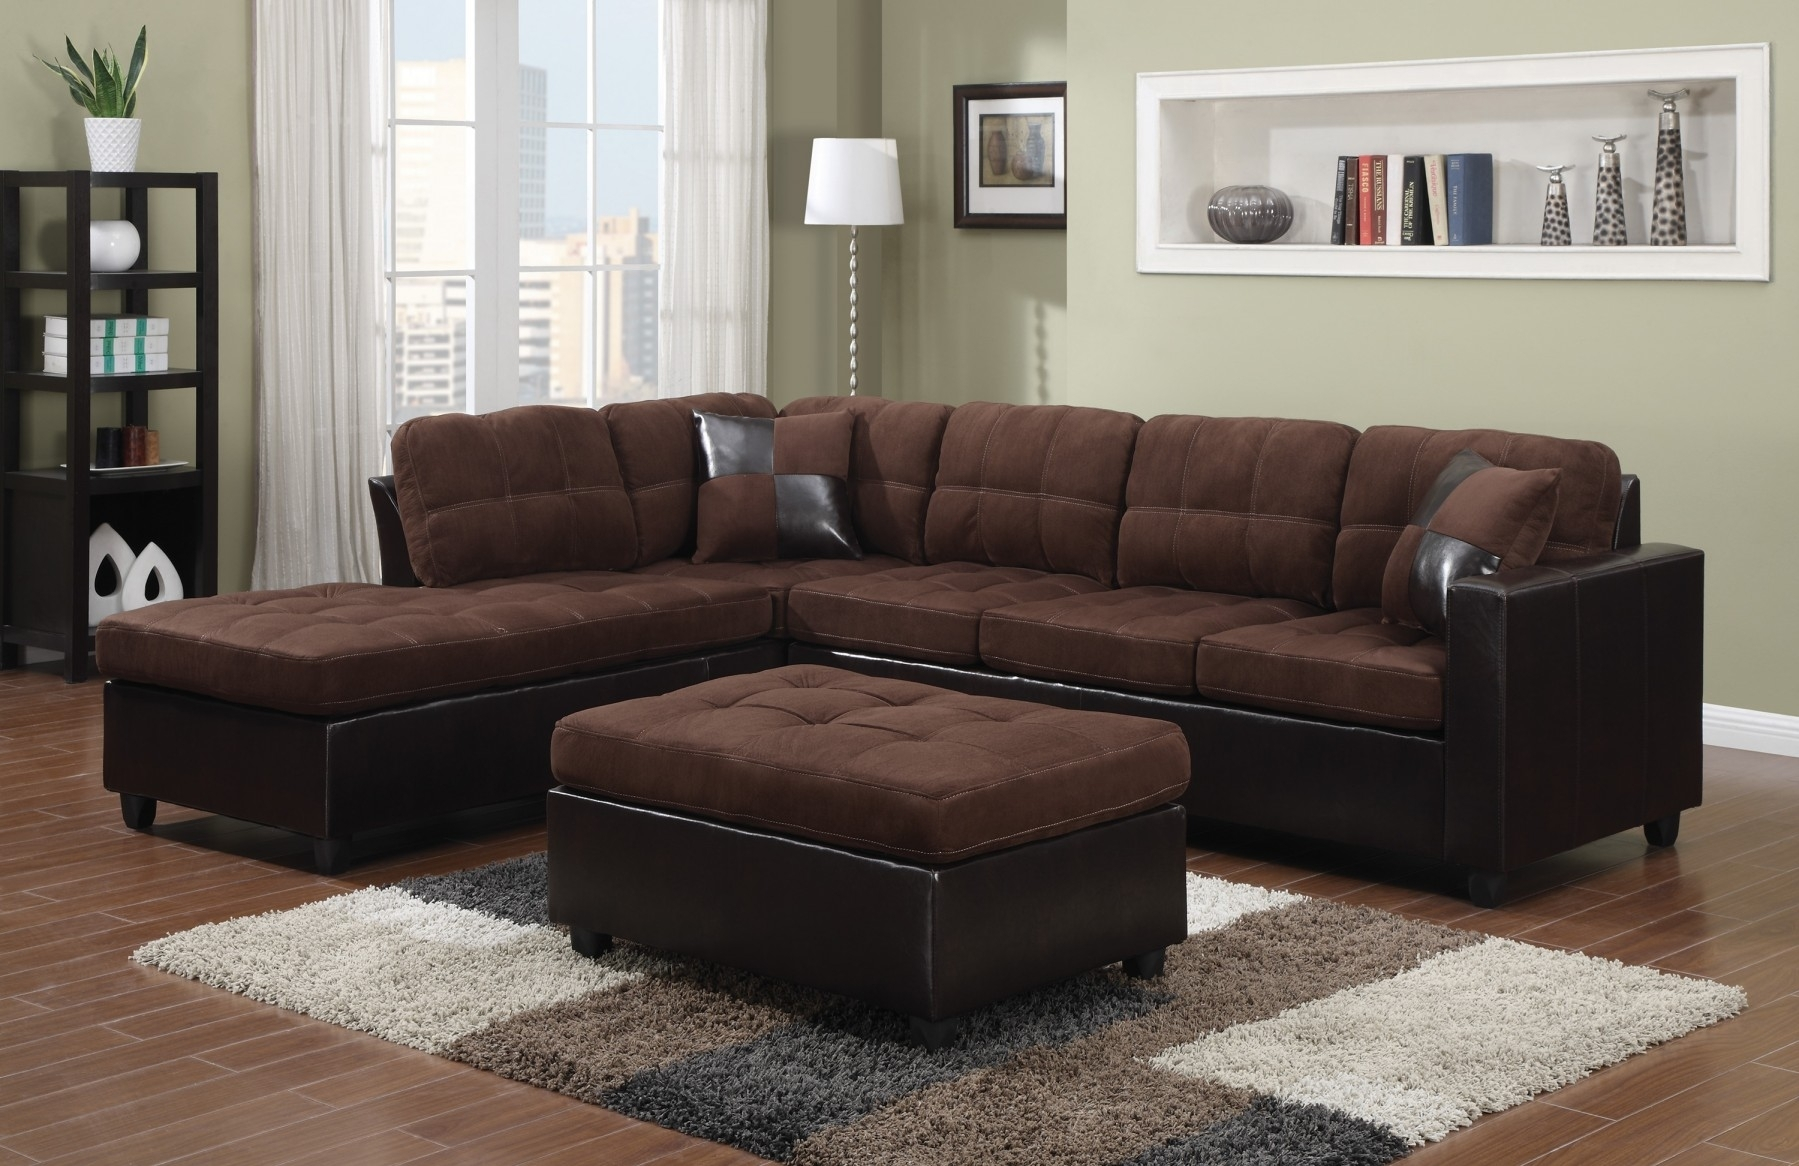 Furniture : 6 Recliner Spring Recliner Olx Sectional Sofa 6 Piece pertaining to 102X102 Sectional Sofas (Image 2 of 10)